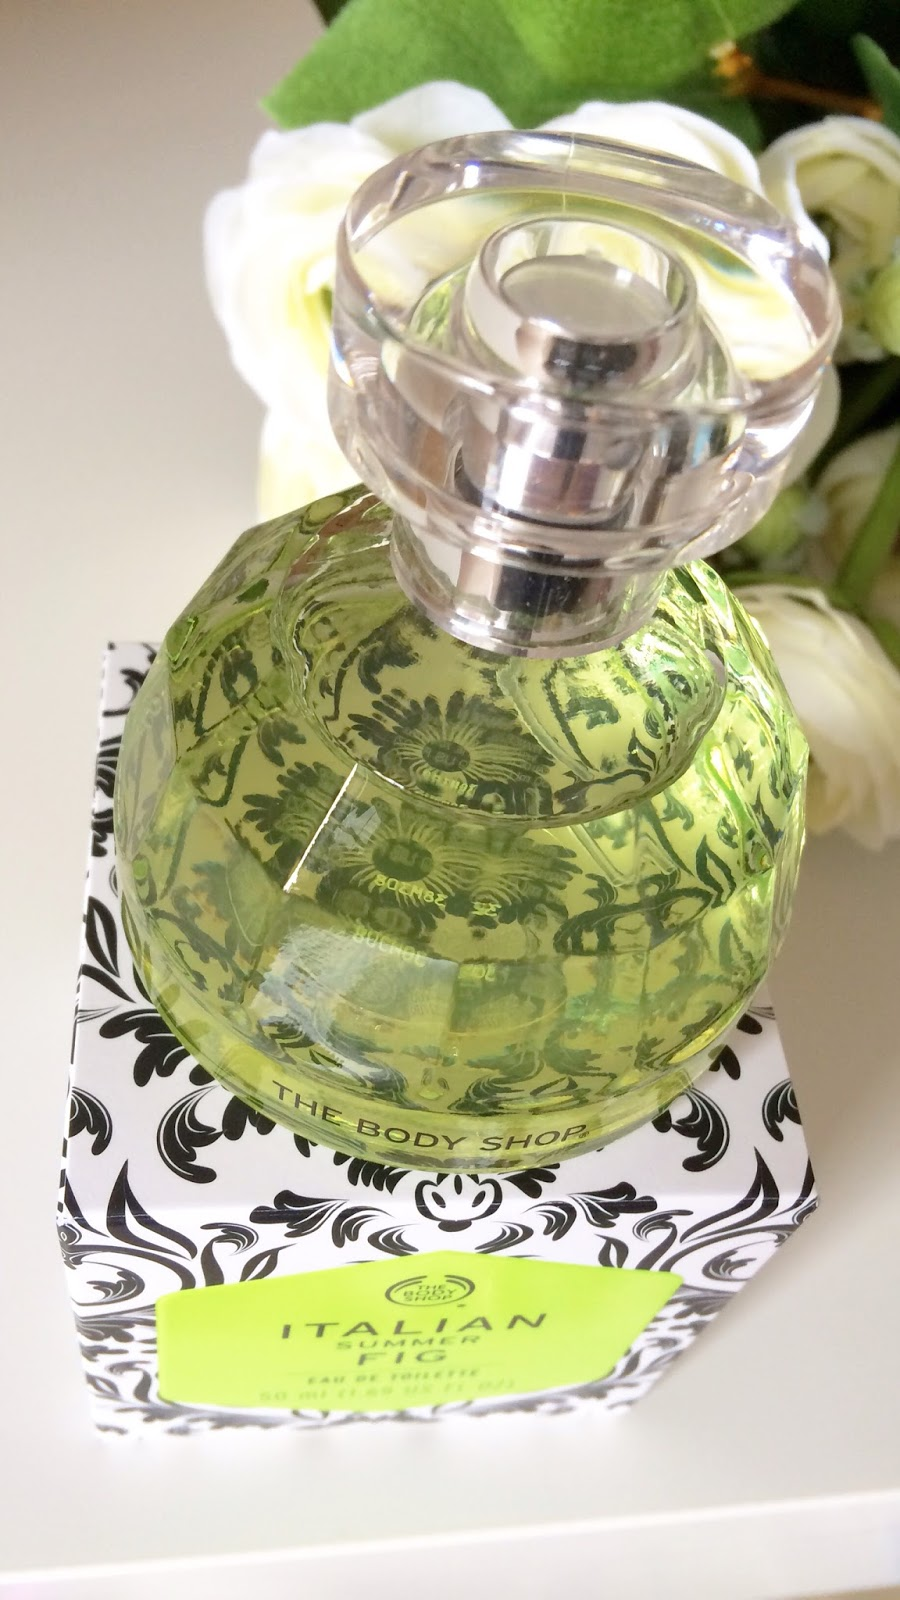 The Body Shop perfume Italian summer fig